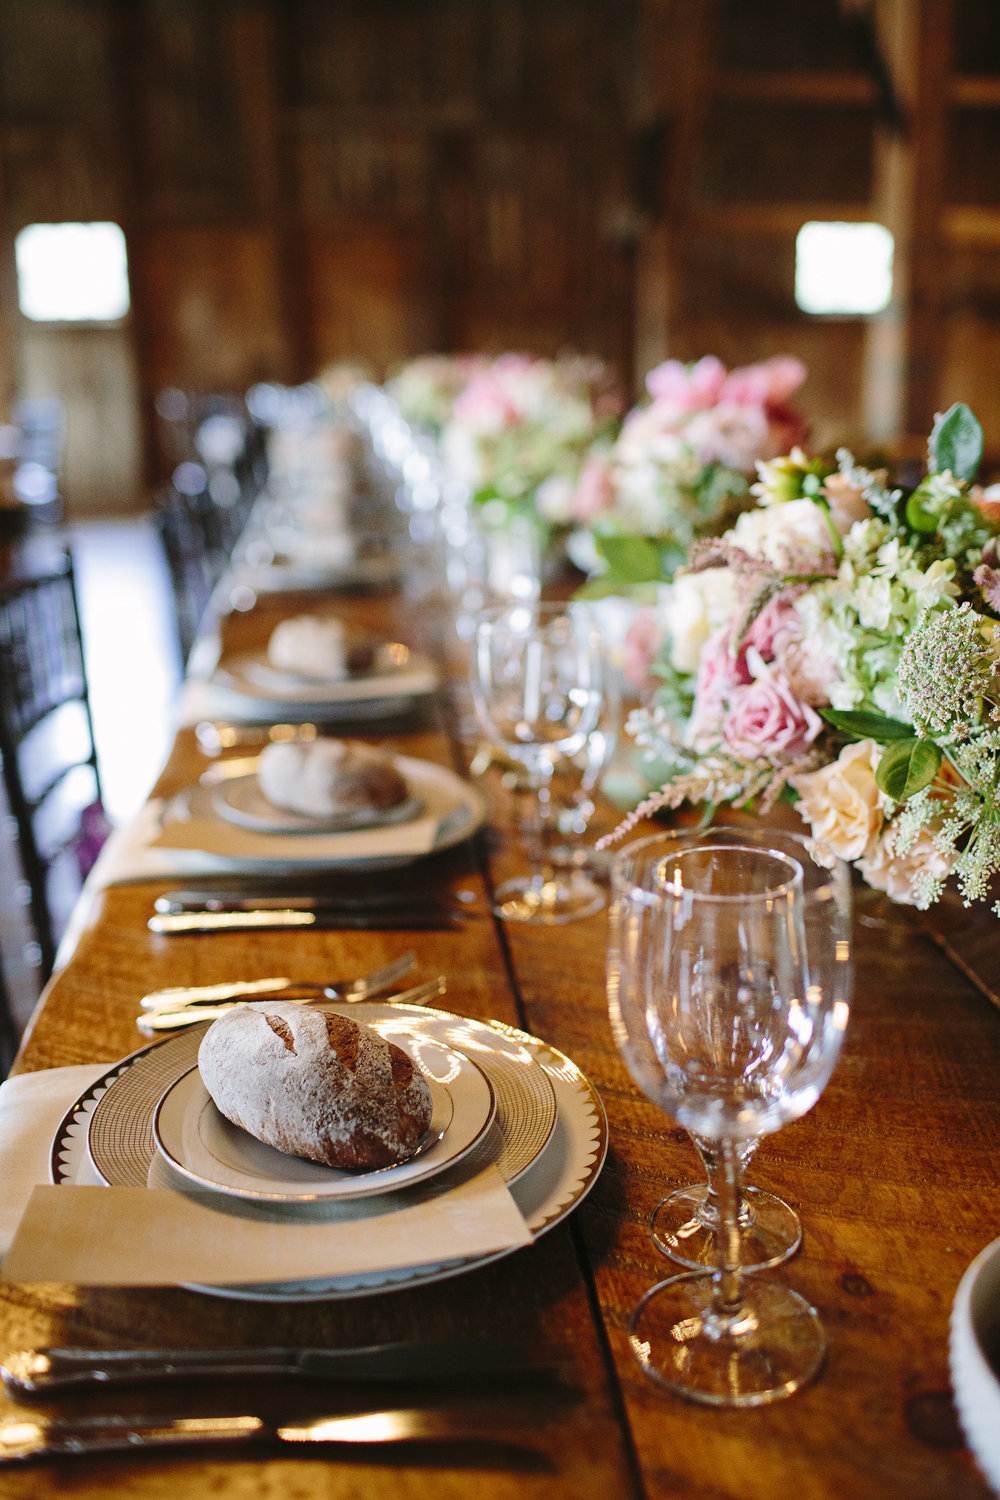 Photo: Brooke Courtney/ Florals: Sullivan Owen/ Catering: a(MUSE)/ Tables: Maggpie Vintage Rentals/ Tabletop: Party Rentals LTD./ Styling & Planning: The Styled Bride